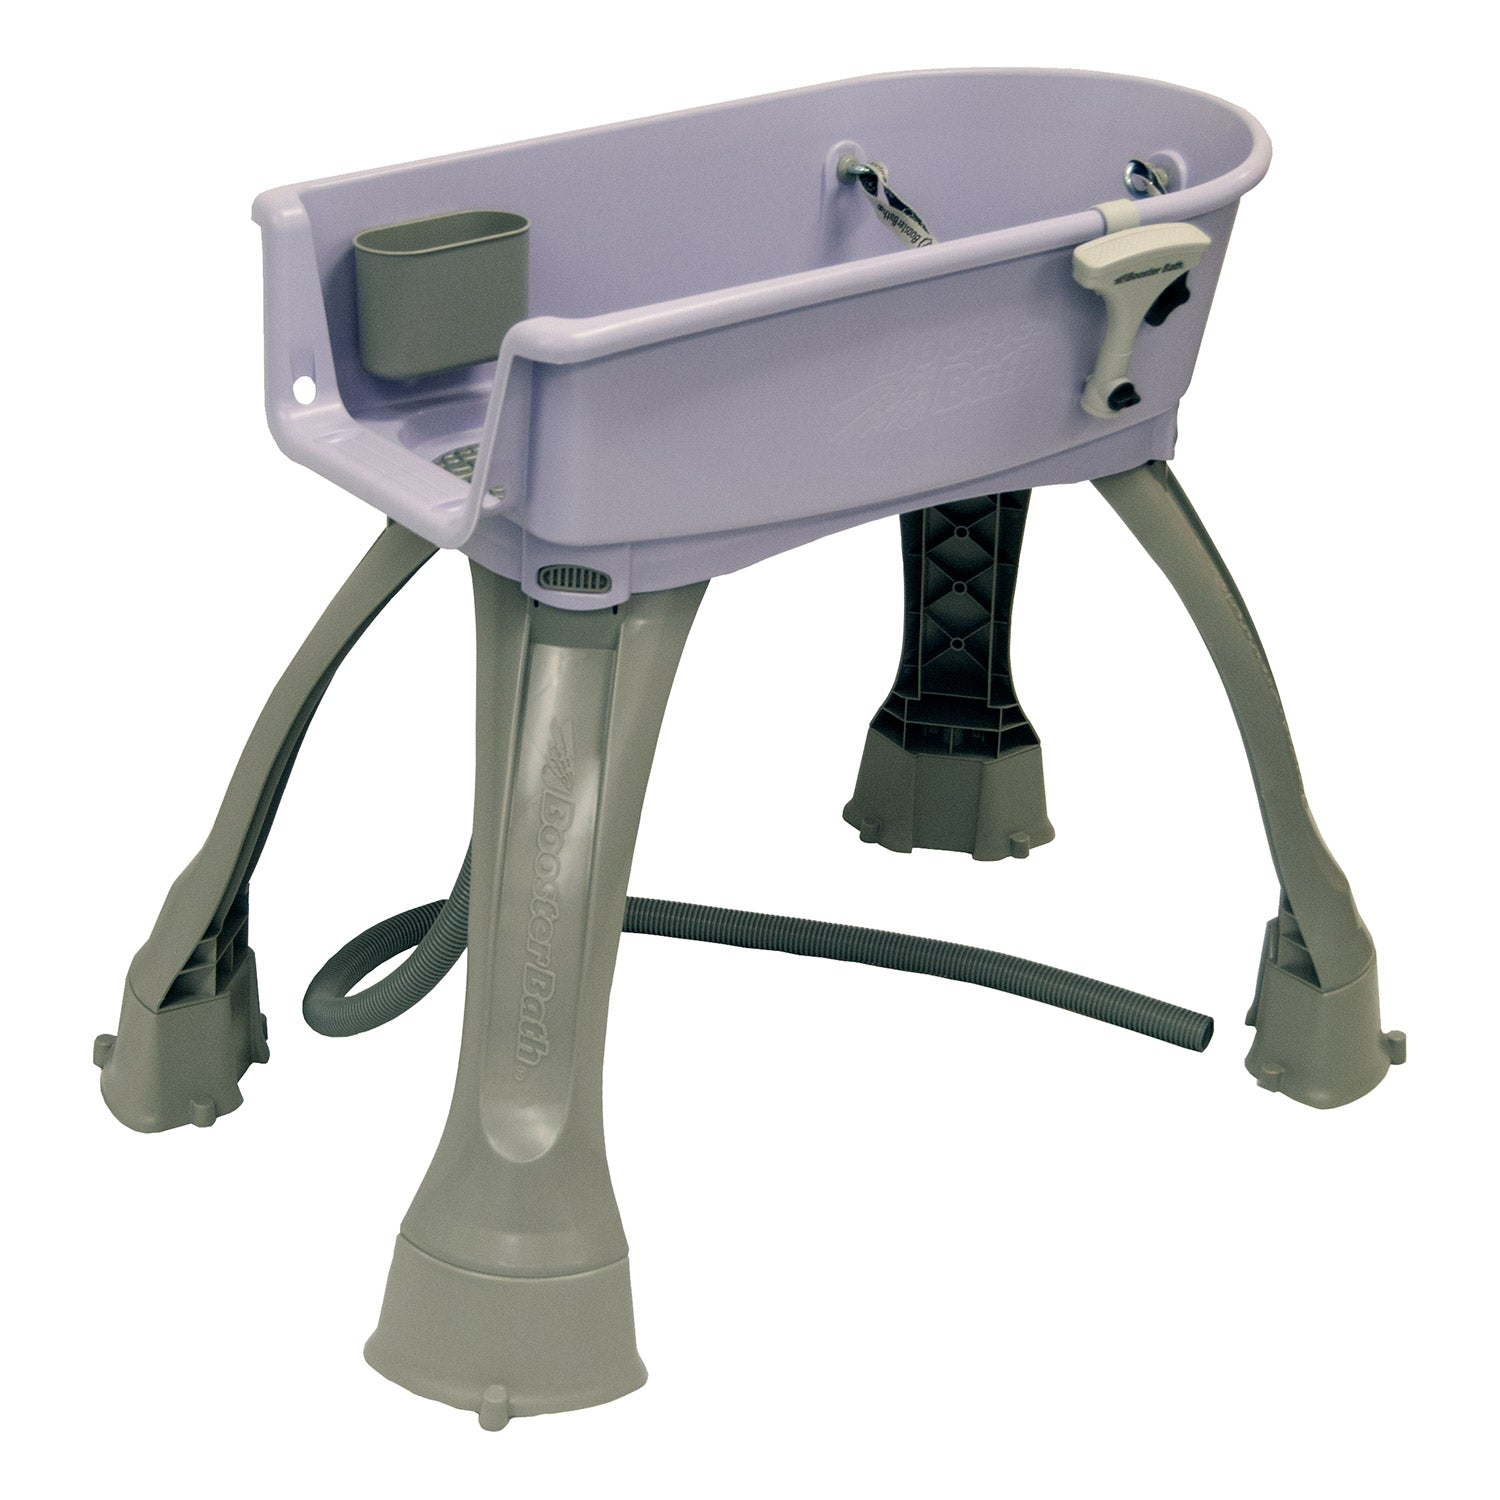 "Booster Bath Elevated Dog Bath and Grooming Center Medium Lilac 33"" x 16.75"" x 10"" Dog Grooming - London the Local"